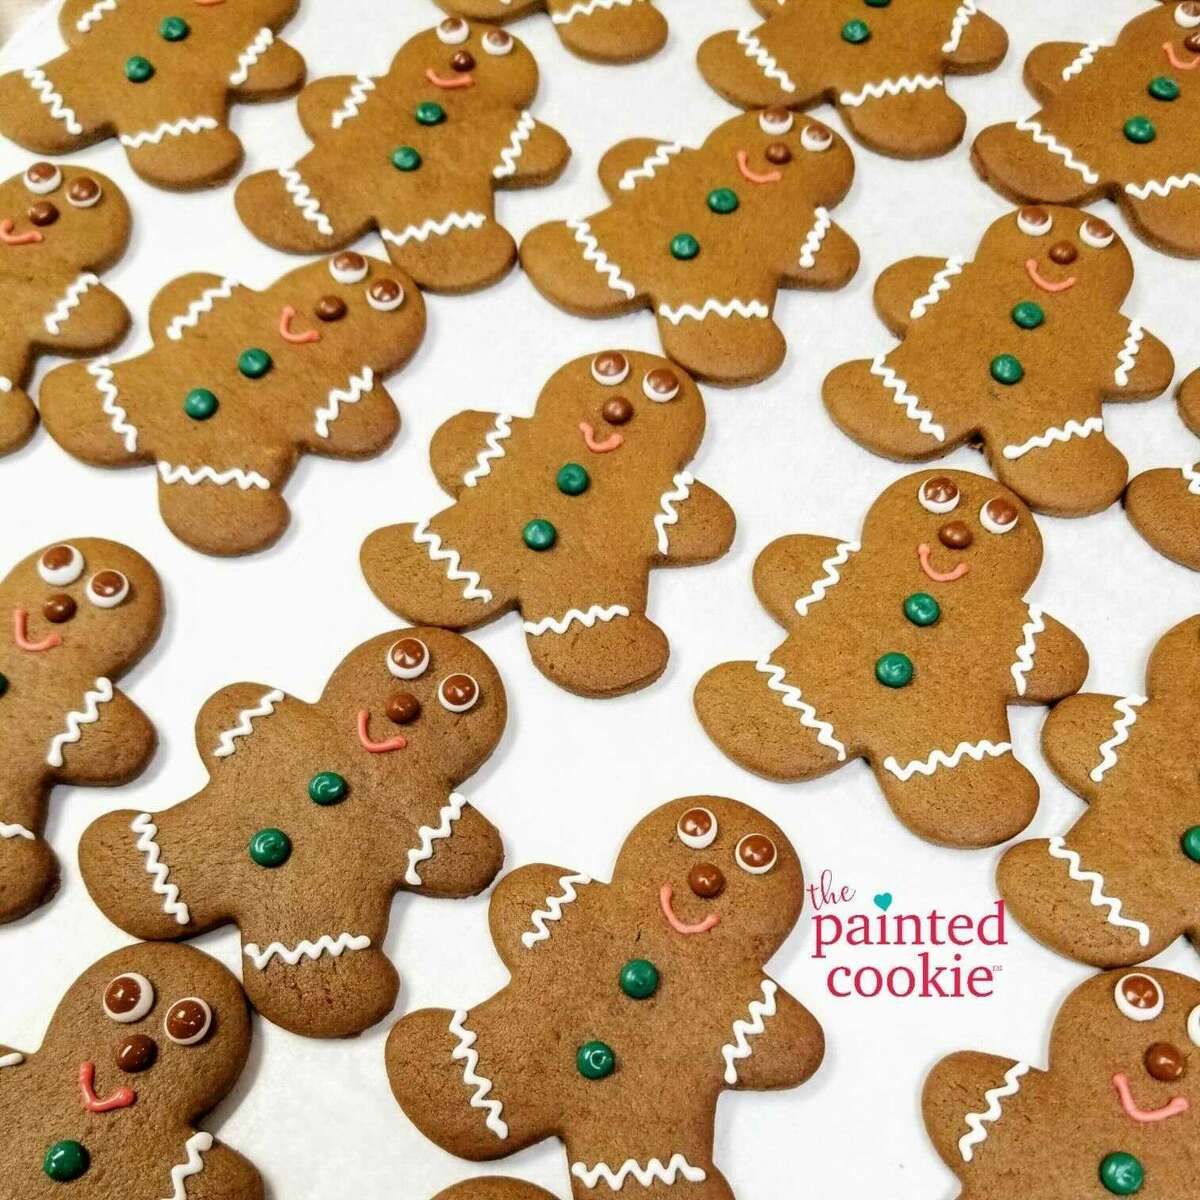 """Susan Schmitt, owner of The Painted Cookie in Wilton, Conn., said she was asked to make gingerbread men for the Netflix movie, """"The Noel Diary,"""" which has been filming in Connecticut with Justin Hartleyand Treat Williams."""